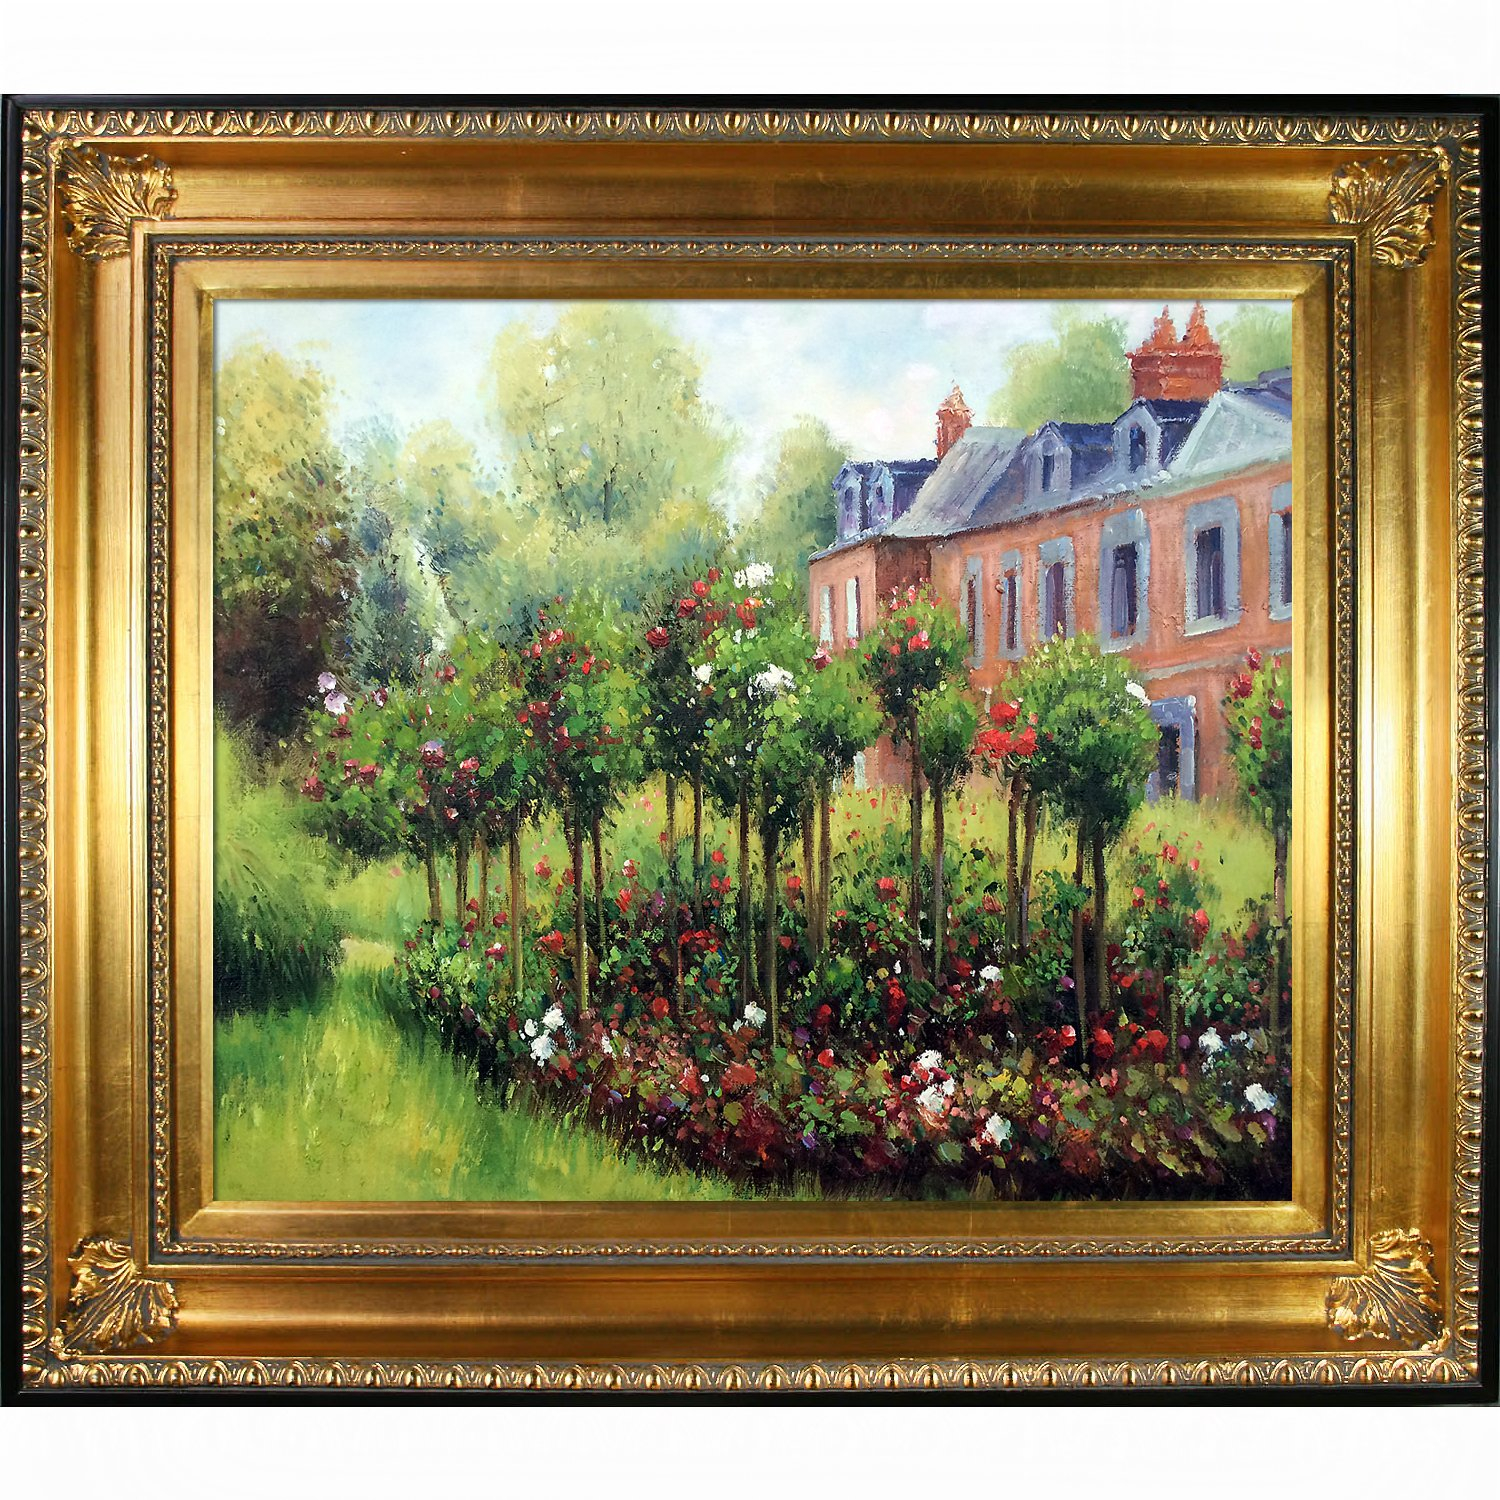 Gold Finish with Black Edge 1874 by Renoir with Regency Gold Frame overstockArt The Garden at Fontenay